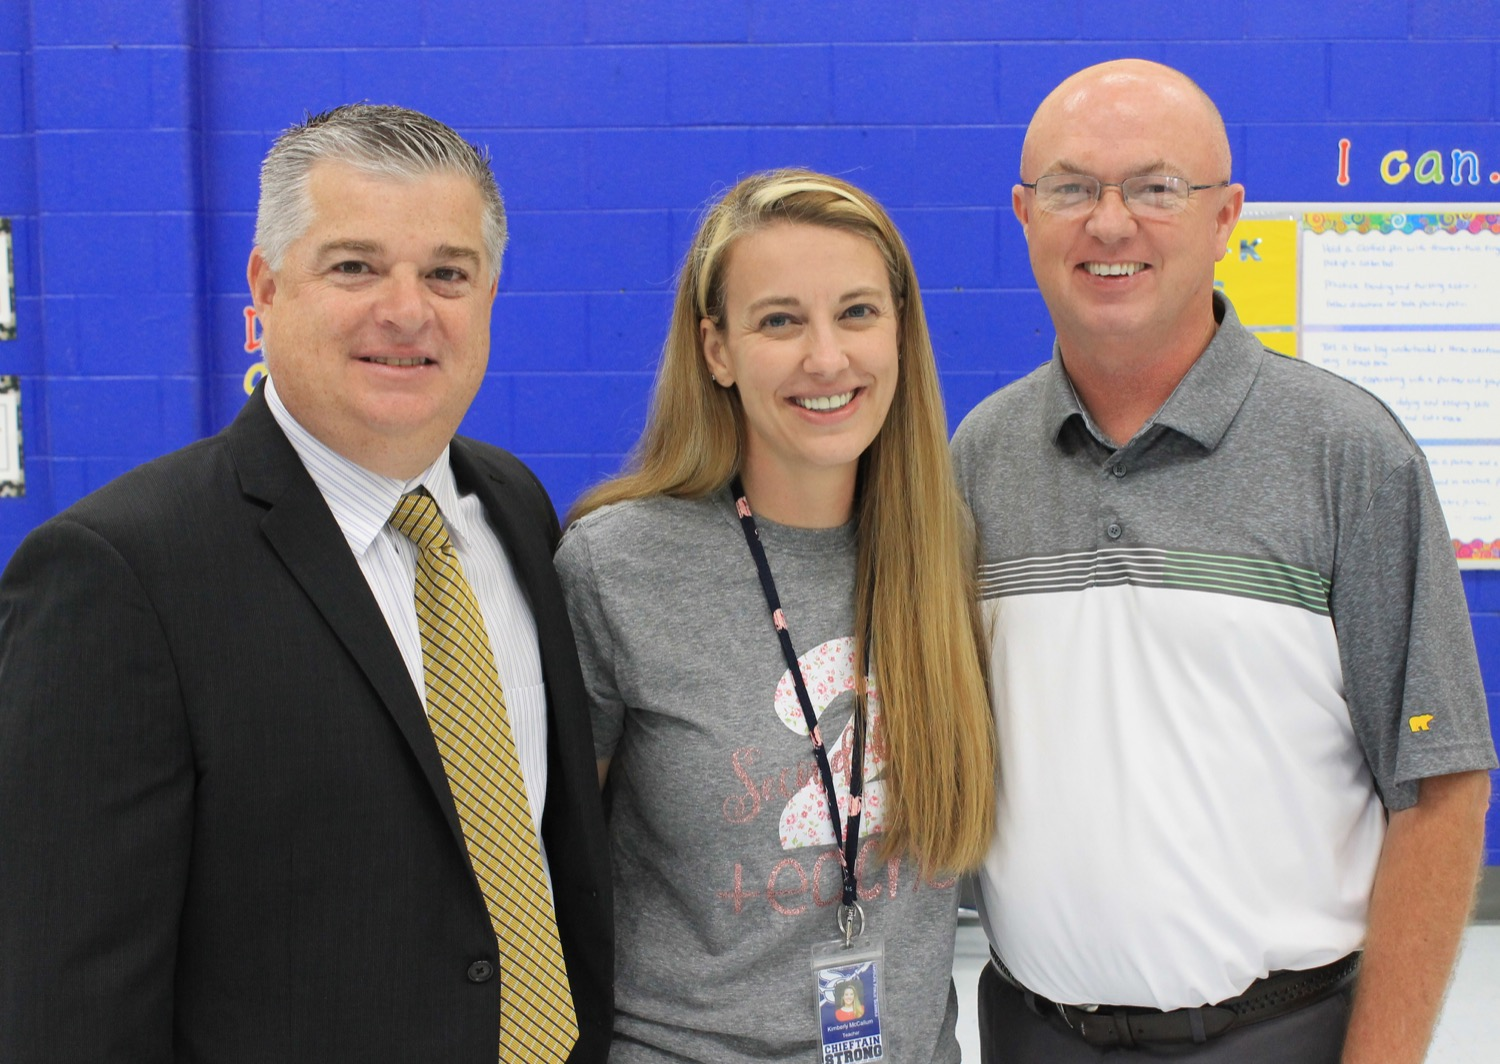 Left to right: Superintendent Robert Armstrong, Liberty STEM's McCallum, and Liberty STEM's Principal Walsh.